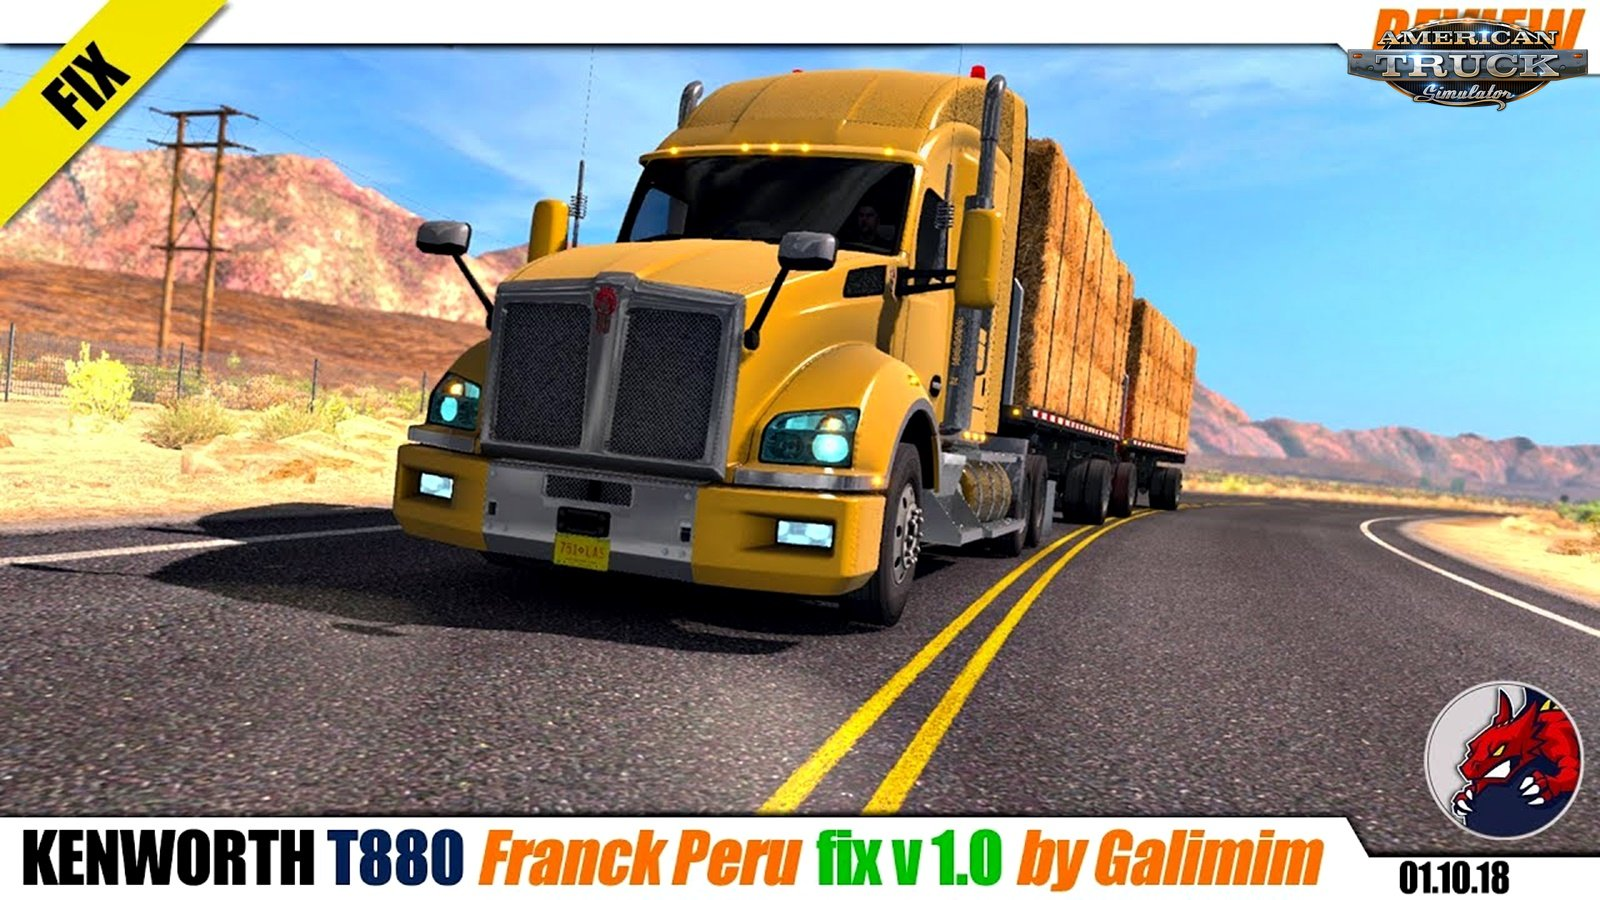 Kenworth T880 fix v1.0 for Ats